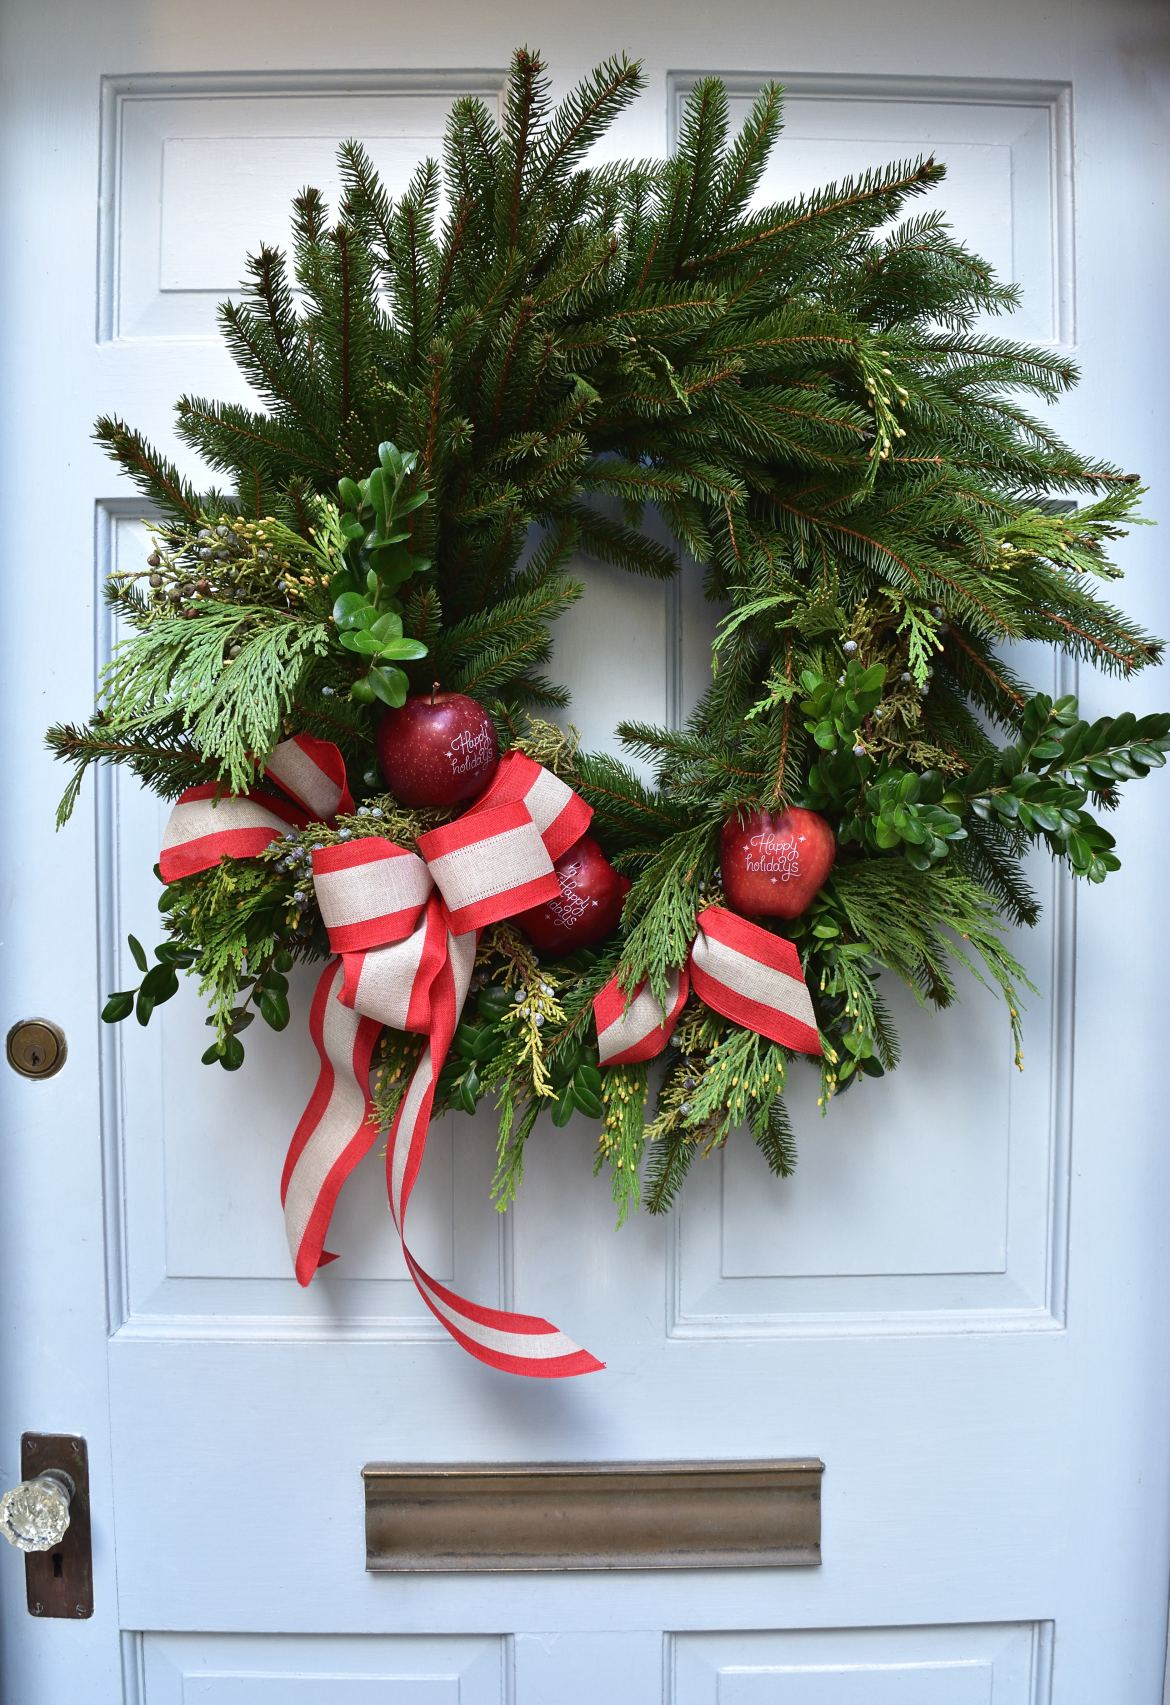 Create your very own holiday wreath for Christmas! Add some Fun to Eat Fruit personalized apples for the wow factor! Check out our blog on FuntoEatFruit.com for styling info by GiggleLiving.com! #wreath #Christmas #brandedfruit #holidaydecor #diy